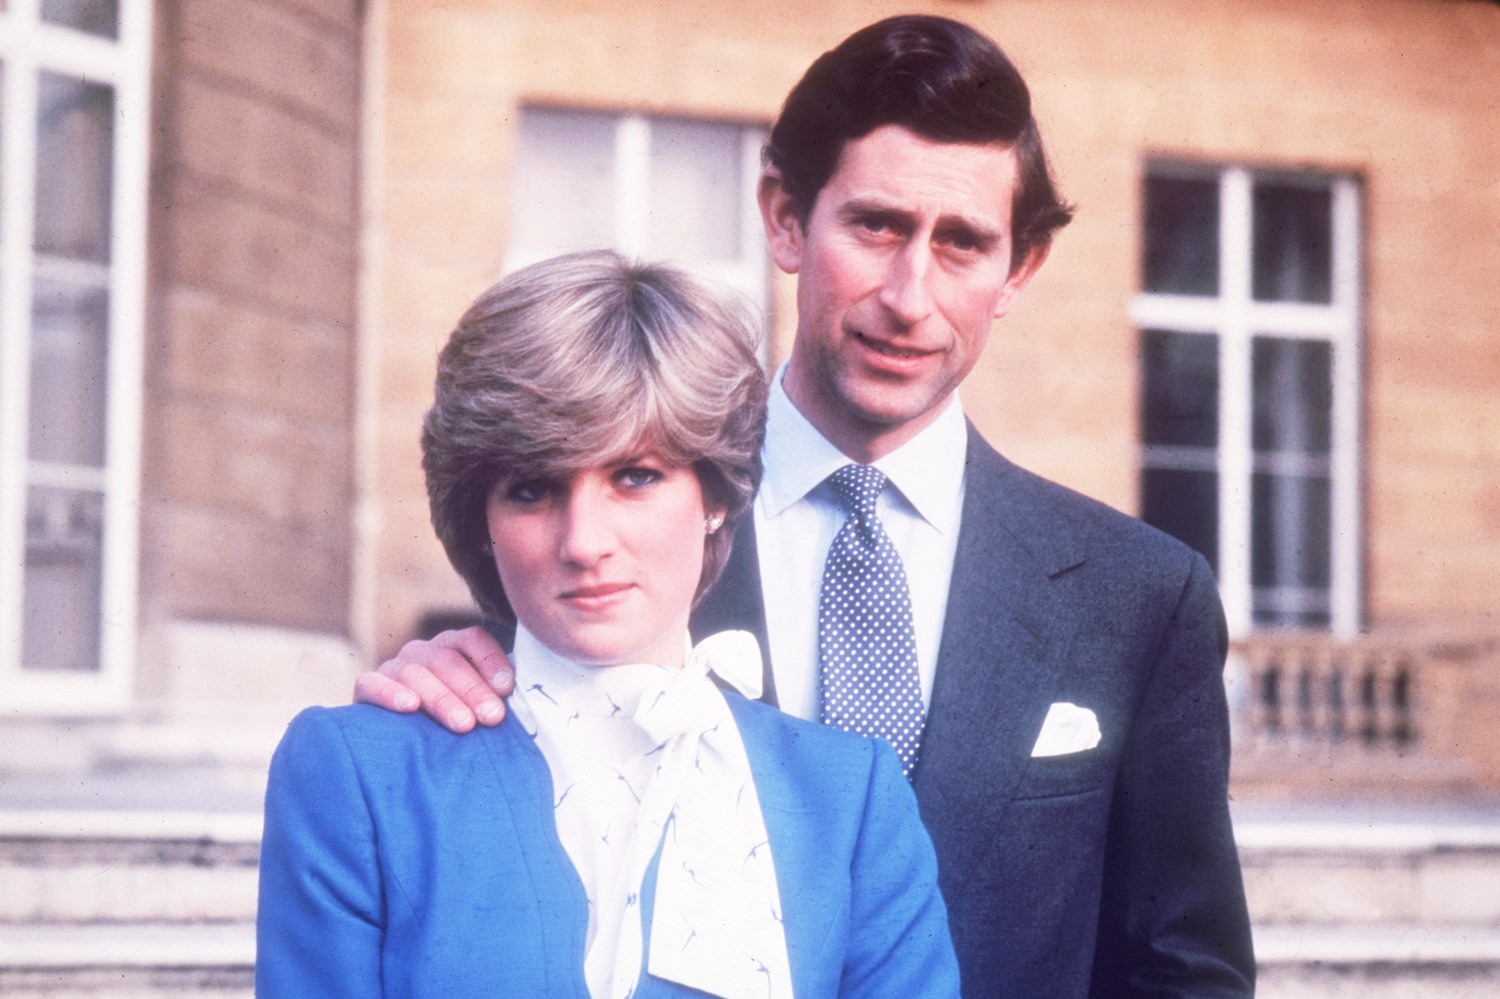 24th February 1981:  Charles, Prince of Wales, and Diana, Princess of Wales, (1961 - 1997) at Buckingham Palace in London on the occasion of their engagement.  (Photo by Central Press/Getty Images)